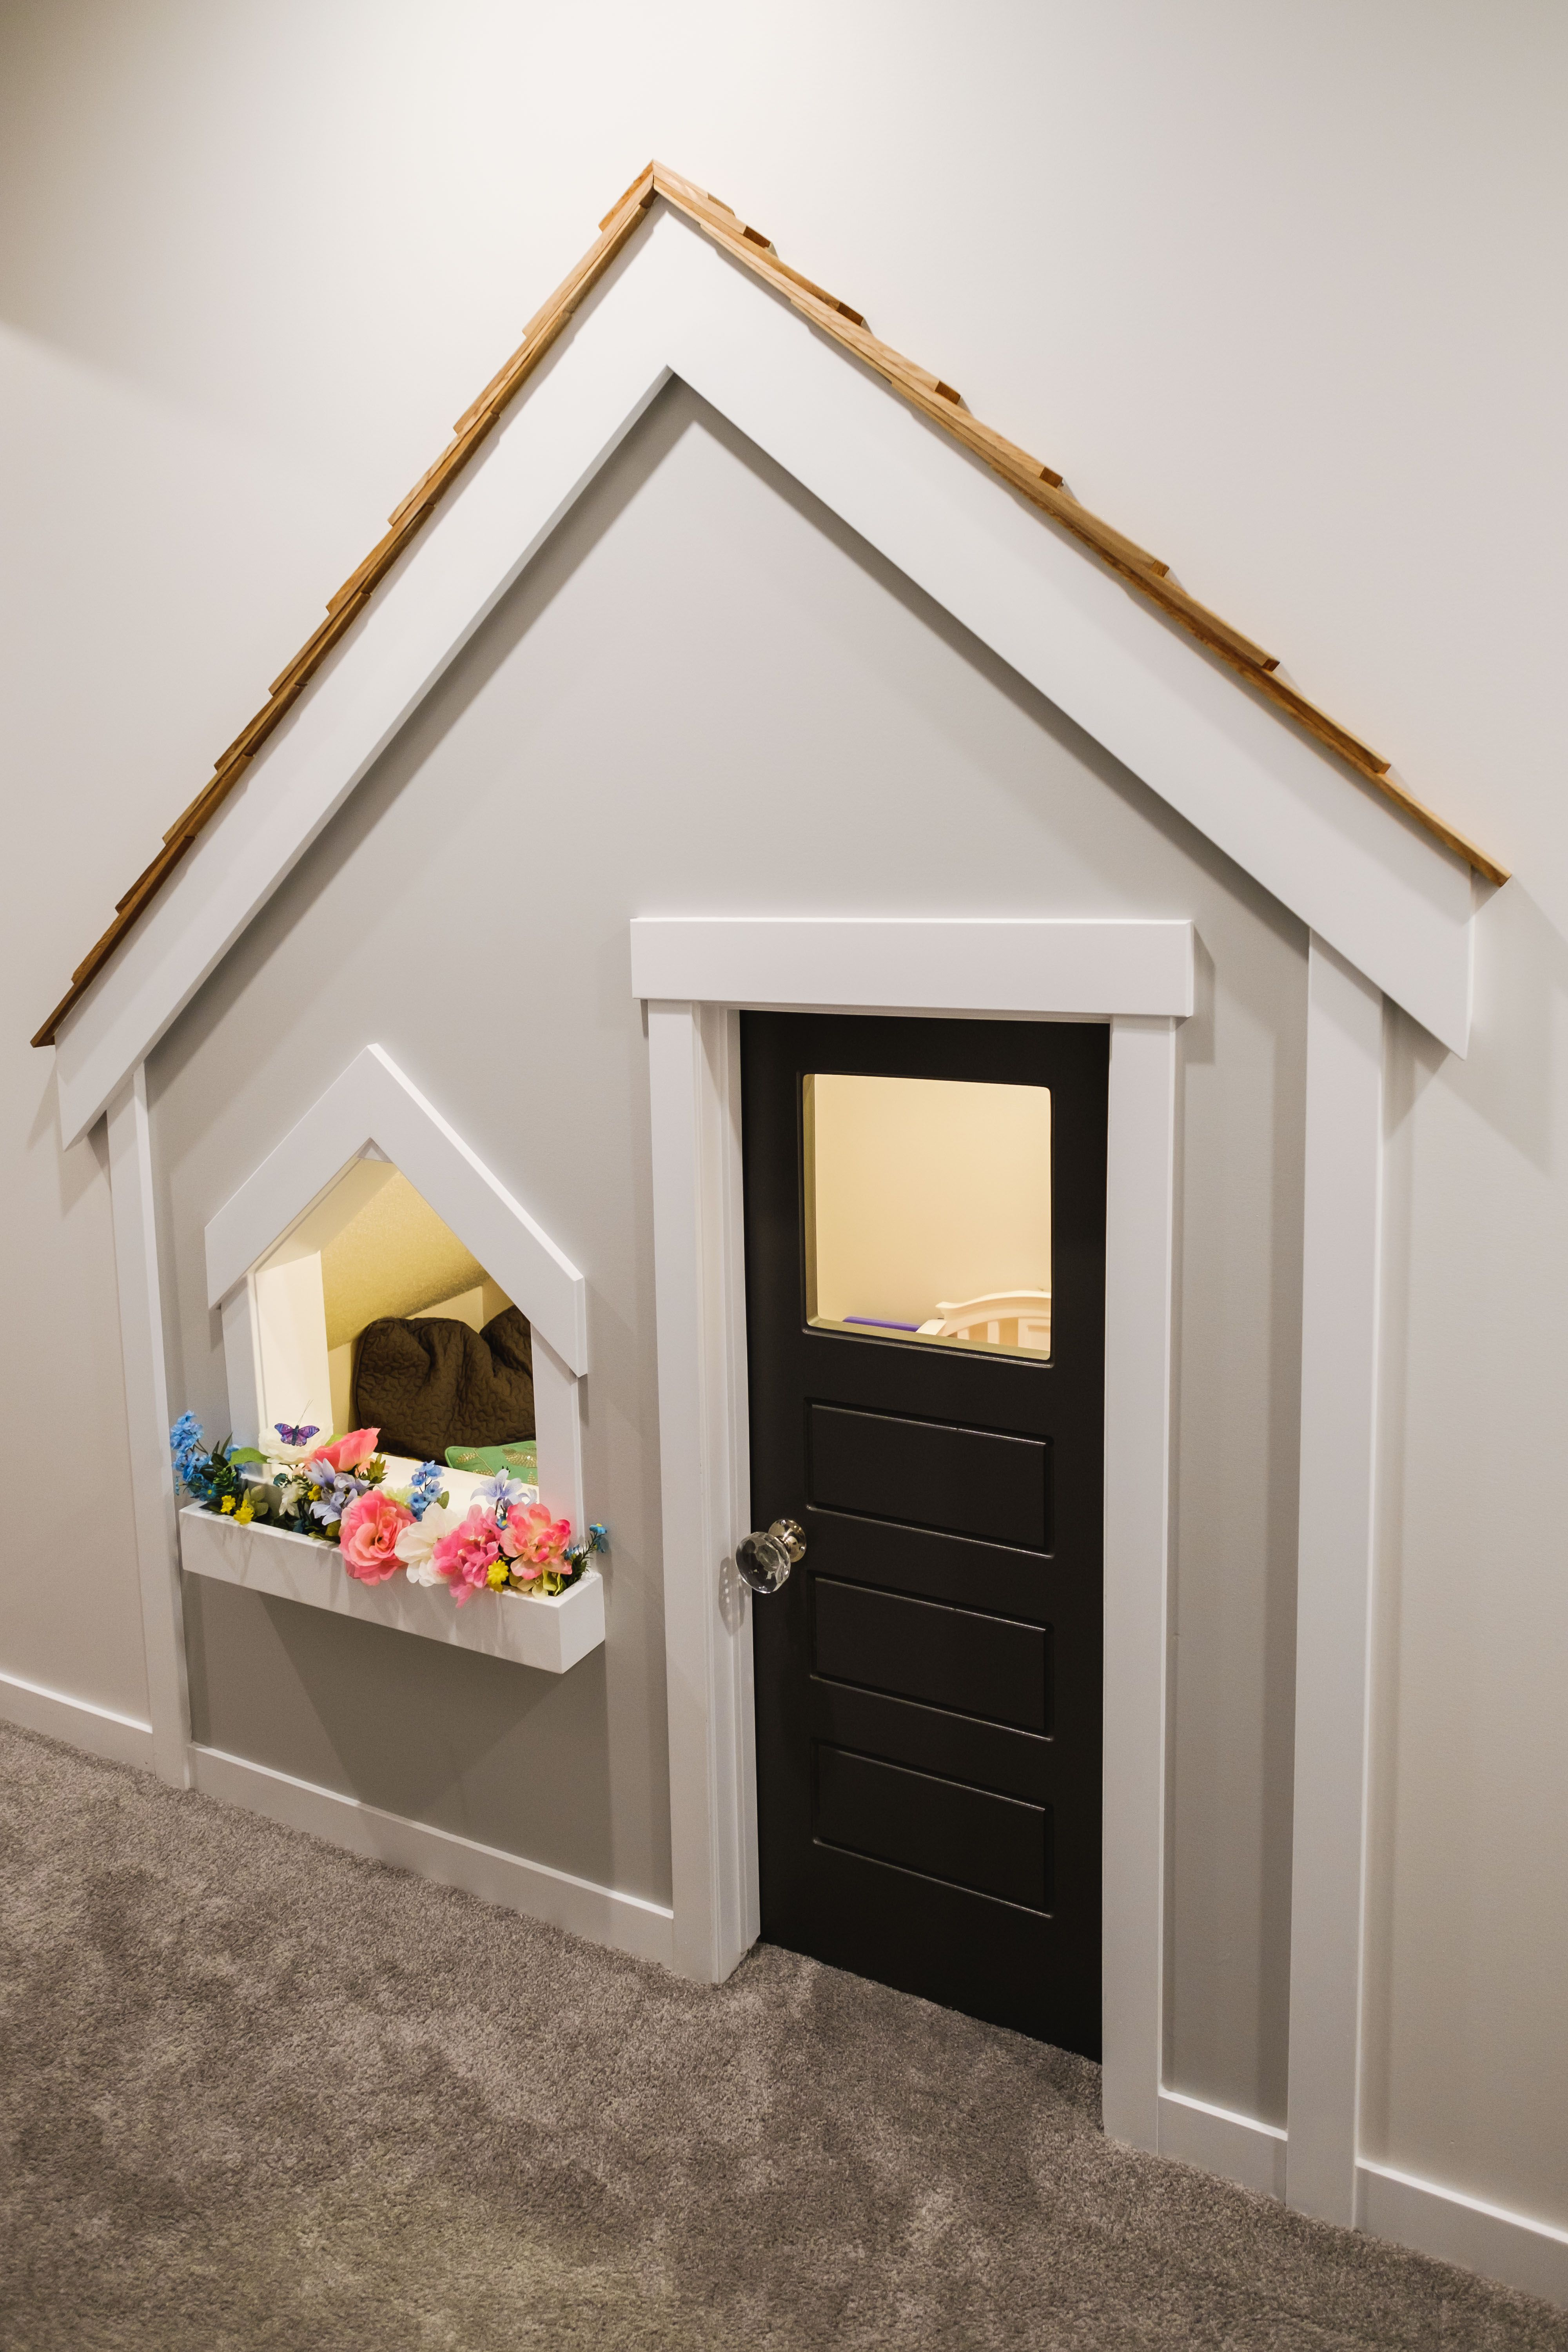 Kids Playhouse Under The Stairs Window Box Crystal